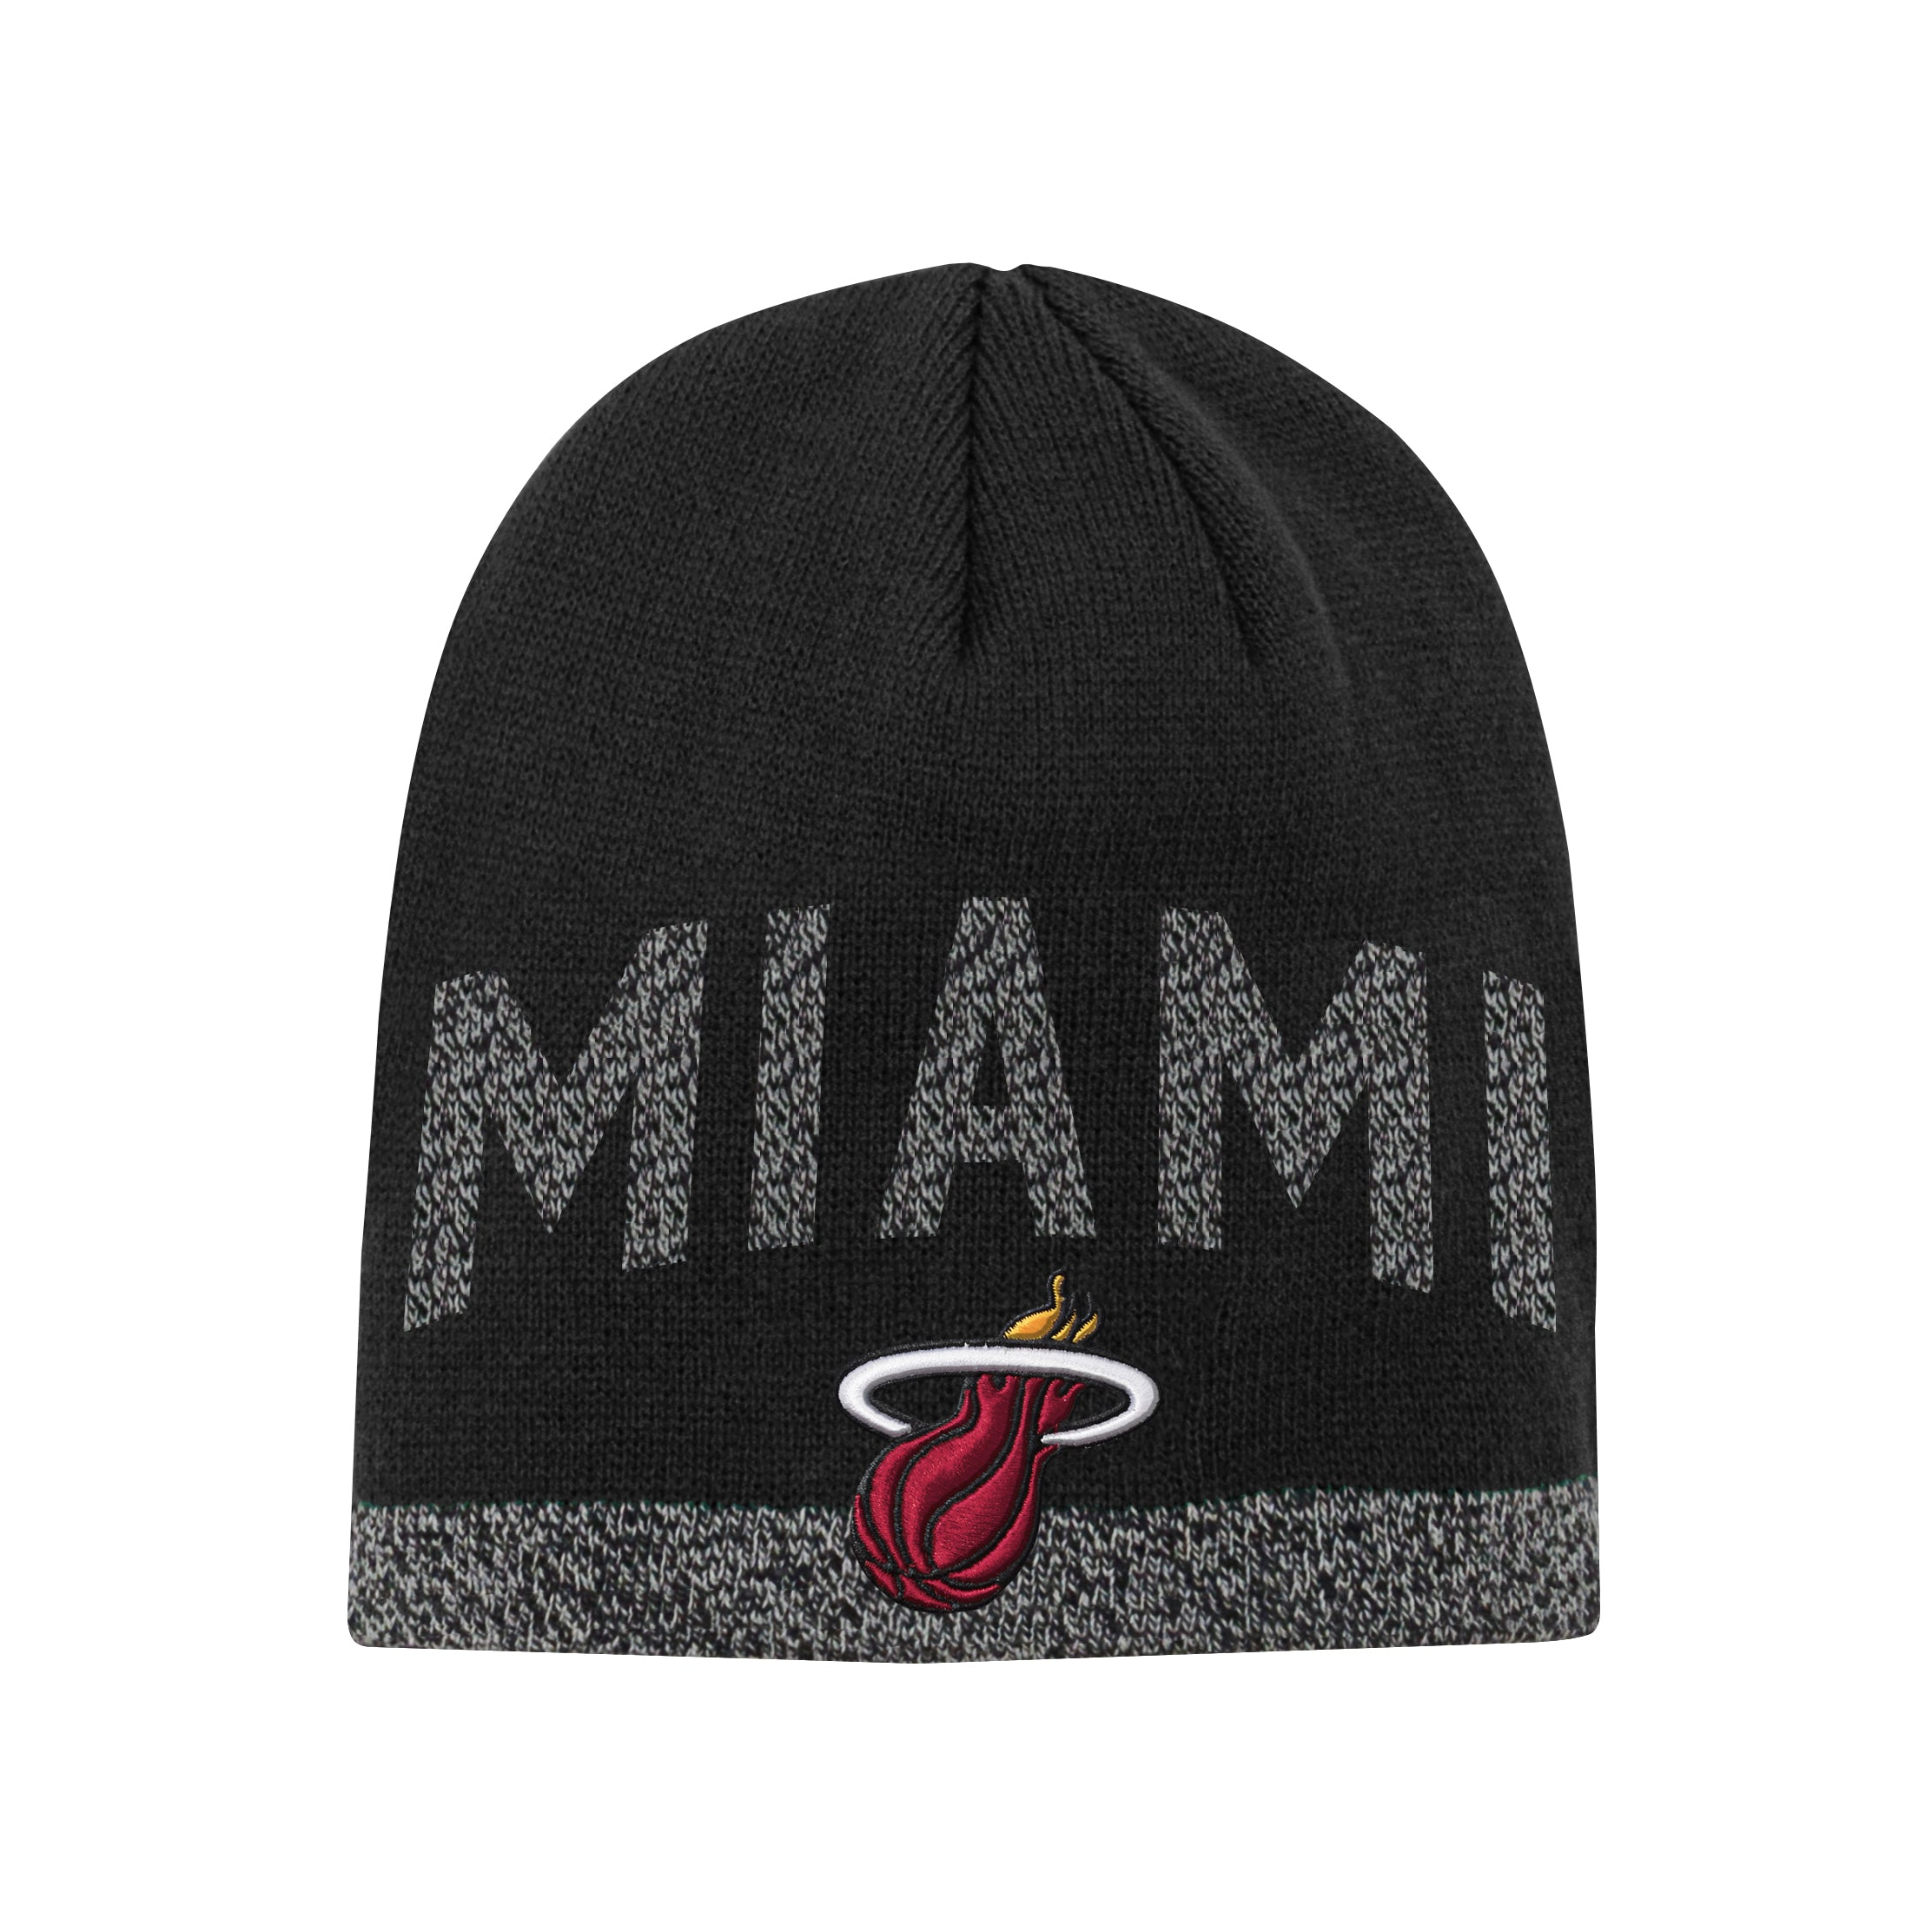 2e084340c3b ... hat fa1a4 46227 hot miami heat youth legacy miami knit featured image  f9d53 9ab31 denmark miami dolphins new ...